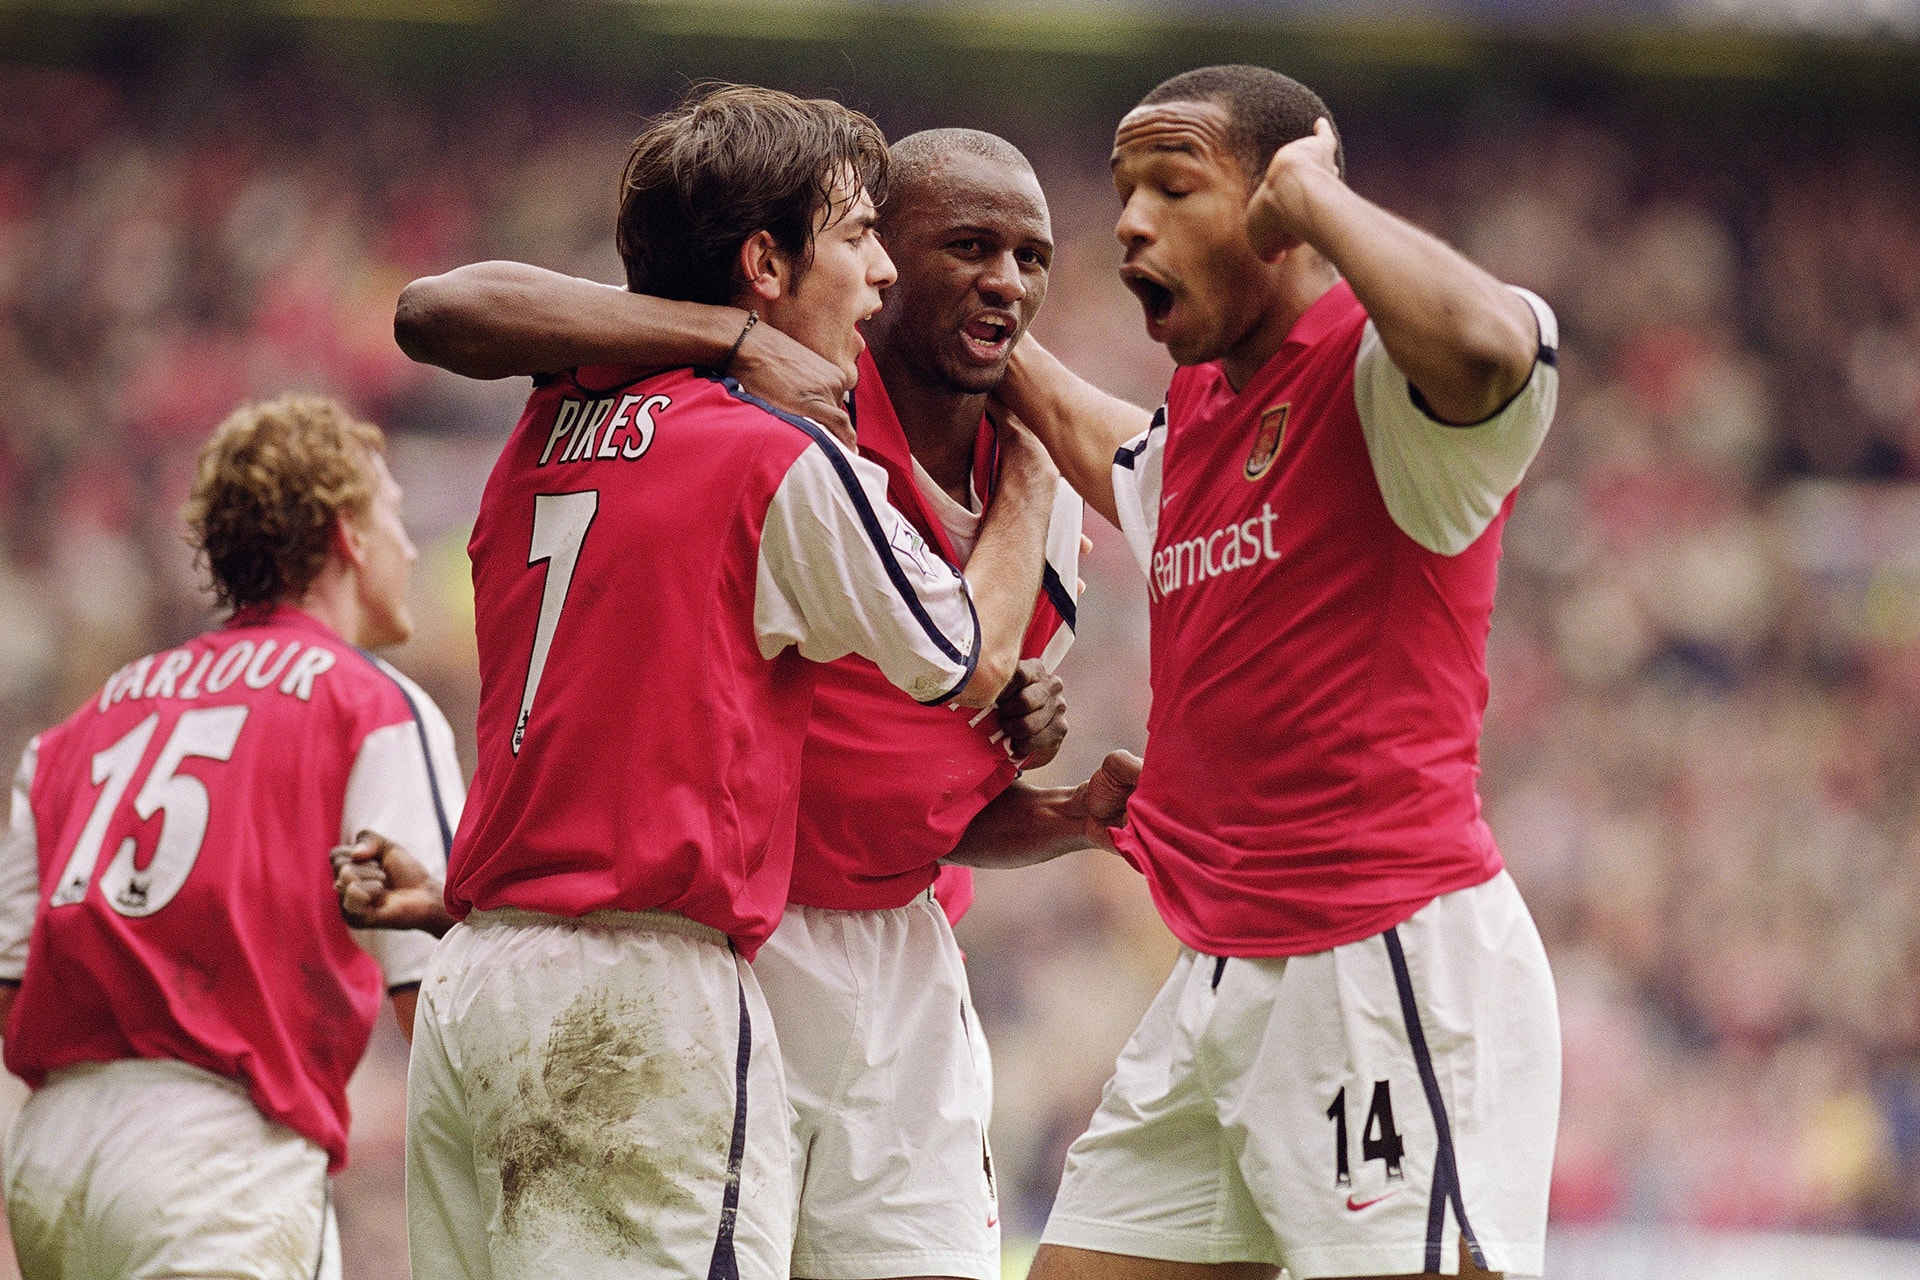 8 Apr 2001: Patrick Vieira (centre) celebrates scoring the equalising goal with team-mates Robert Pires (left) and Thierry Henry (right) all of Arsenal during the AXA sponsored FA Cup Semi-Final match against Tottenham Hotspur played at Old Trafford, inManchester, England. Arsenal won the match 2-1. Mandatory Credit: Ross Kinnaird /Allsport